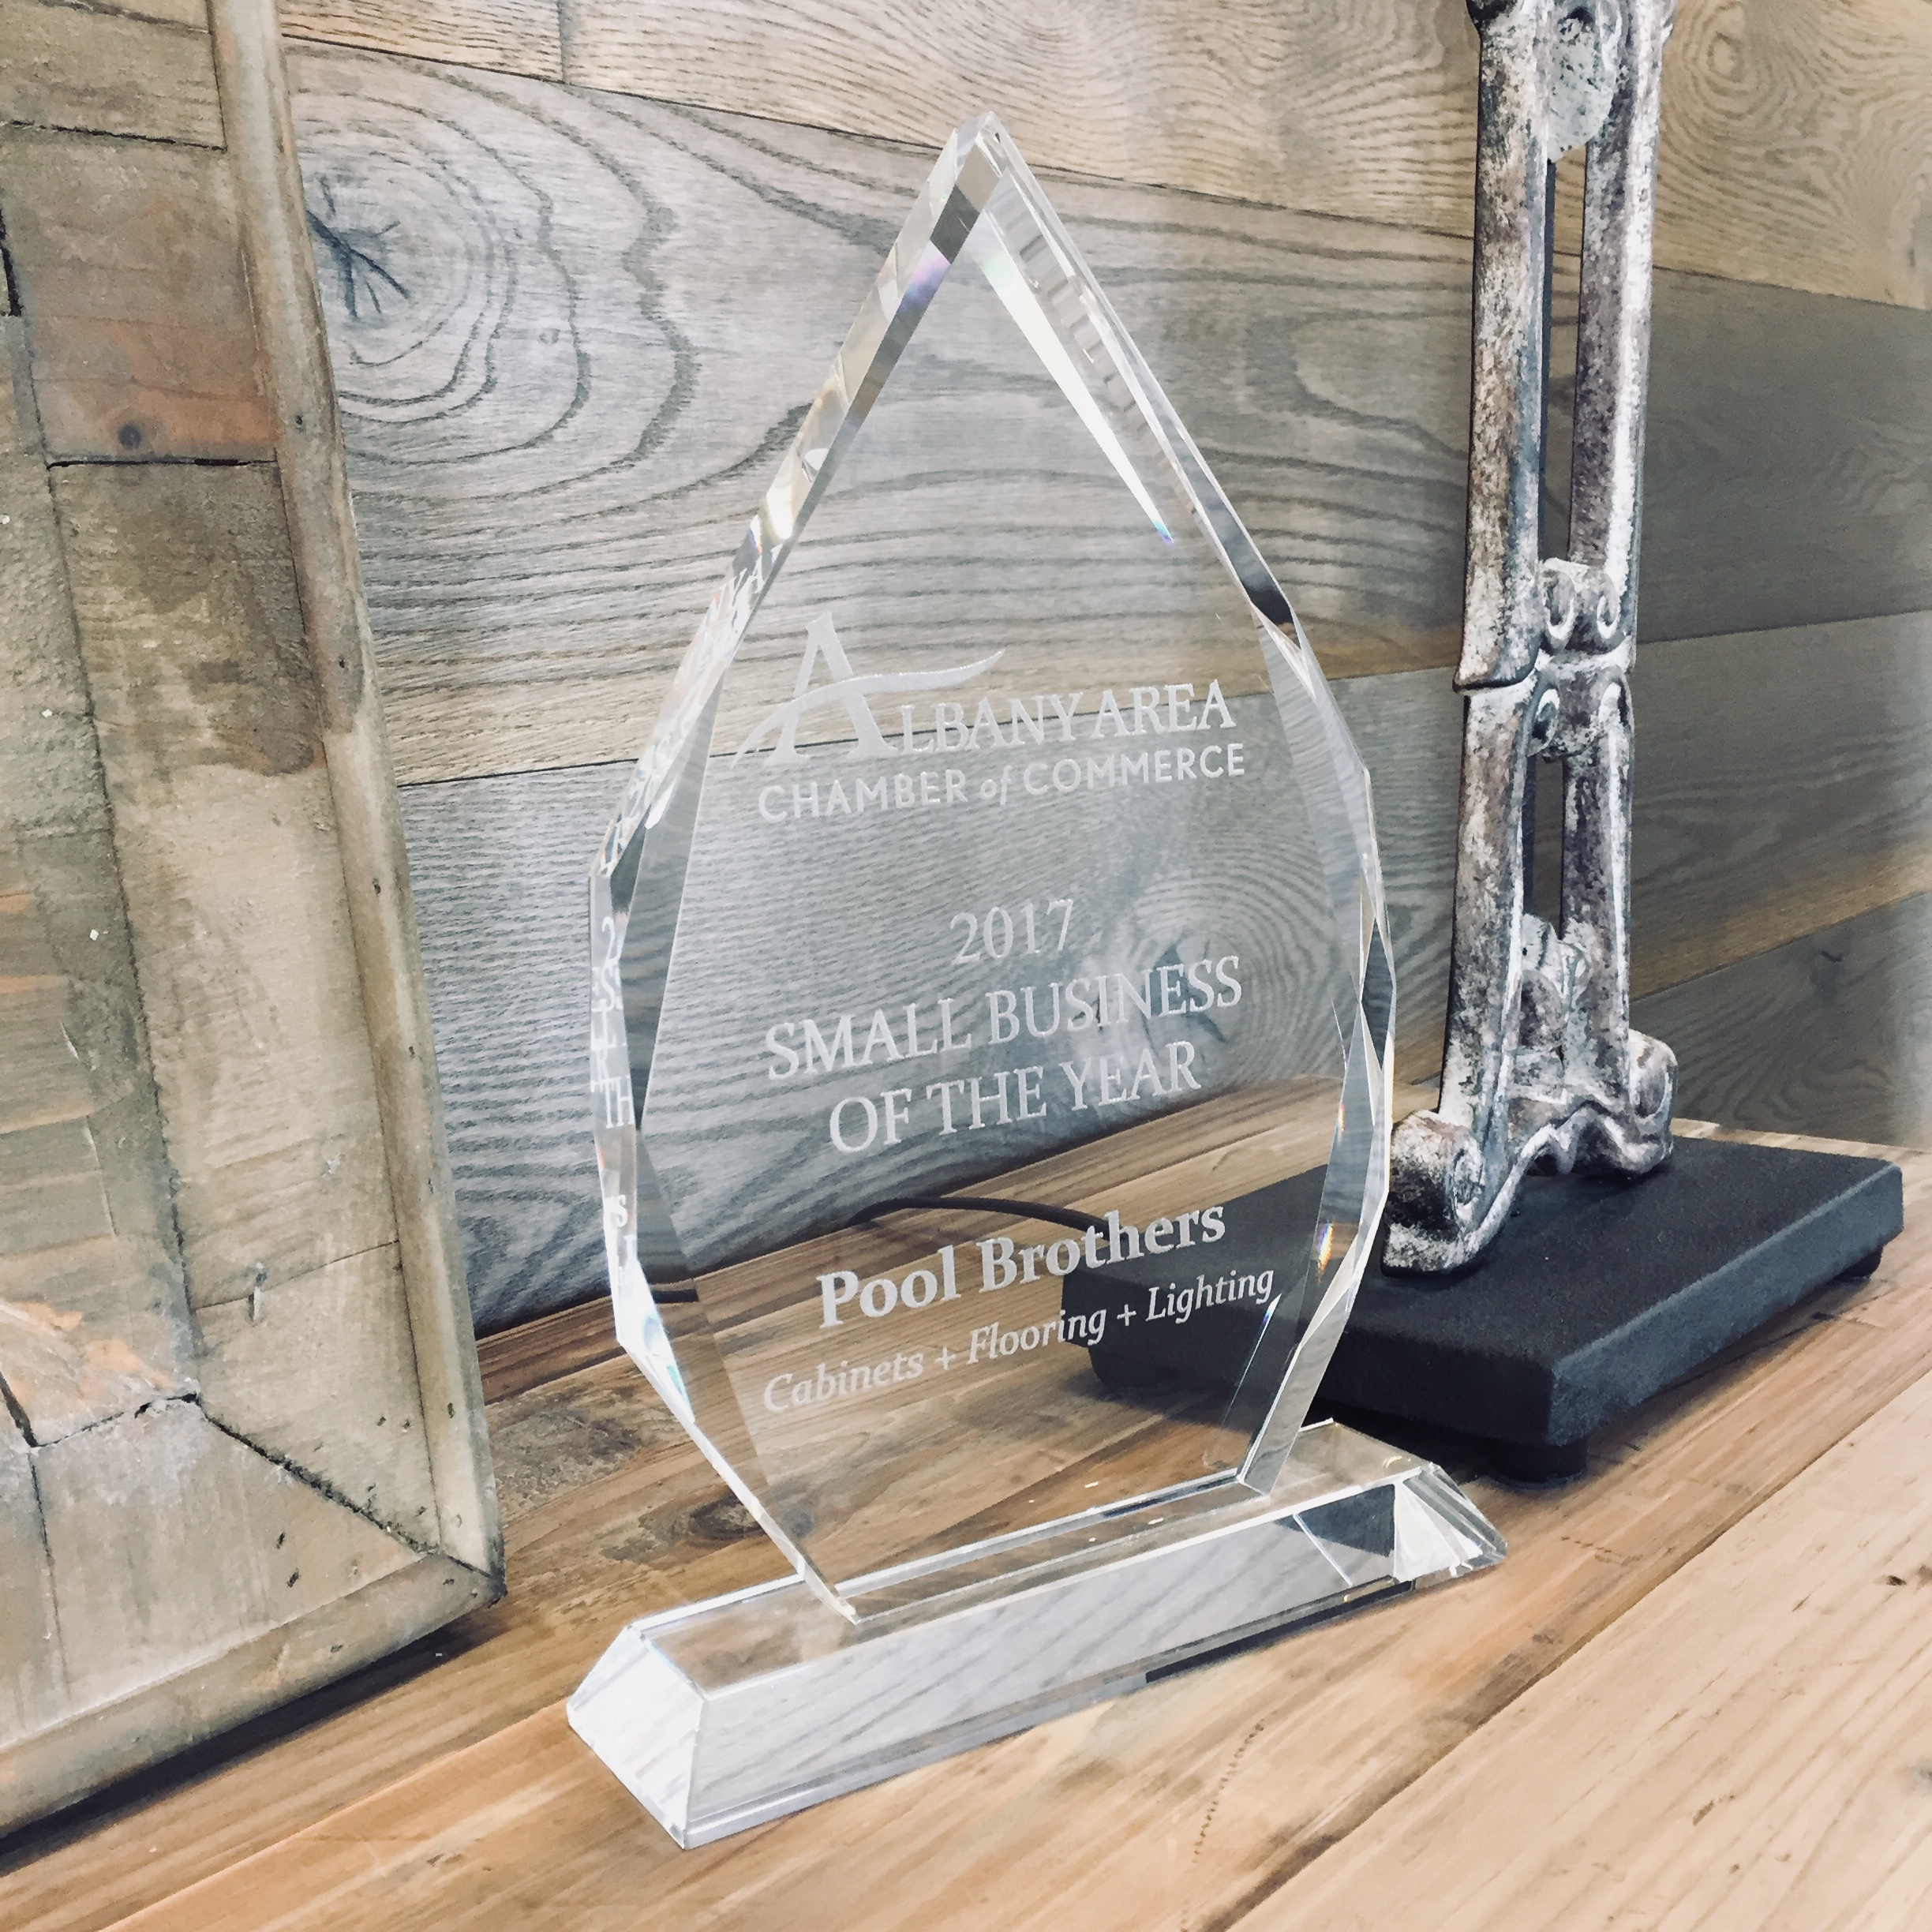 2017 Small Business of the Year Award